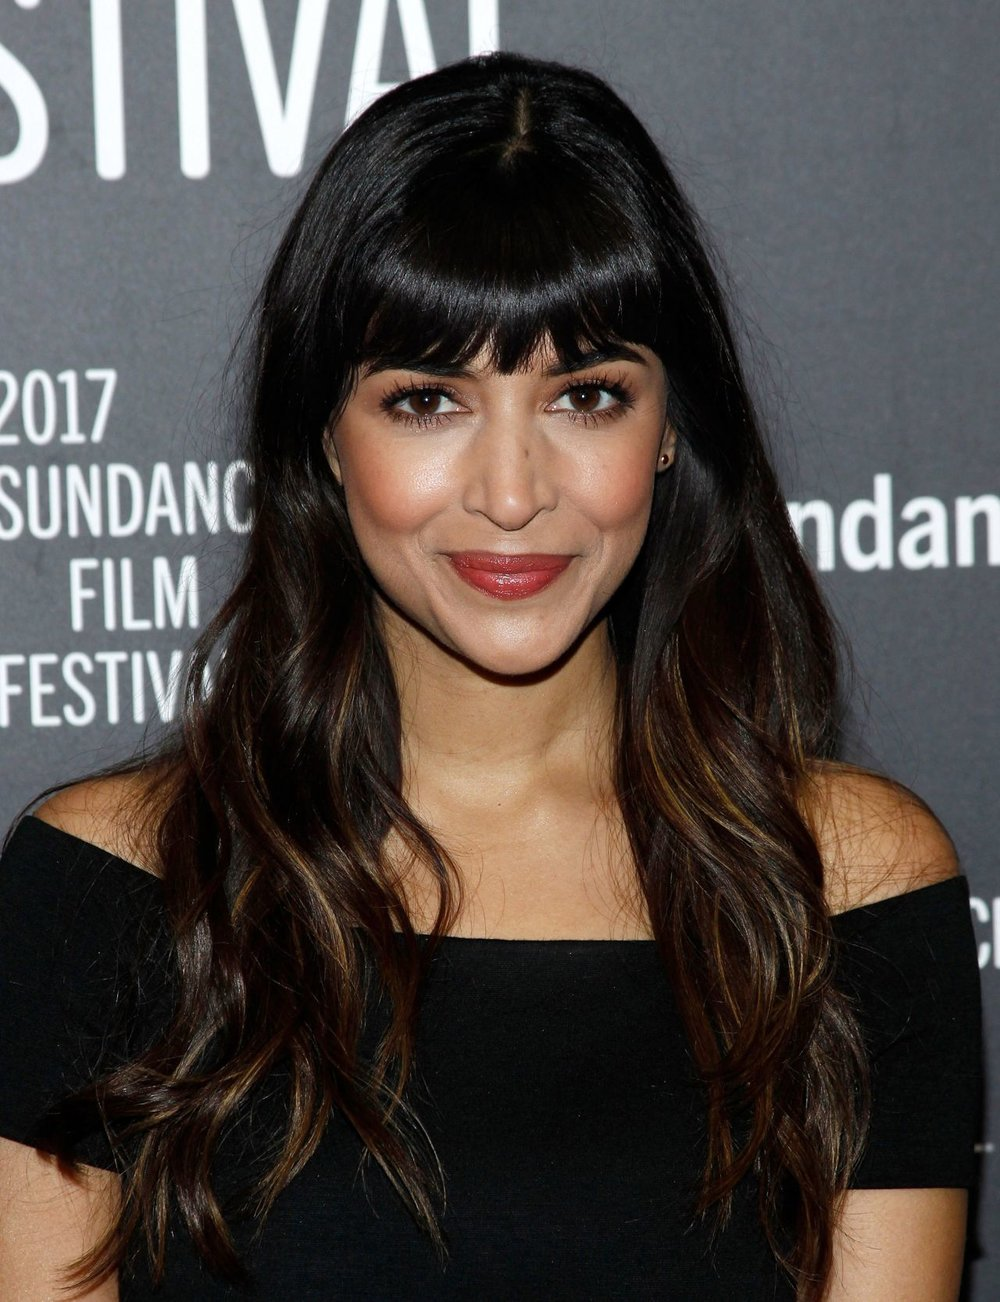 hannah-simone-the-band-aid-premiere-at-sundance-film-festival-2017-1.jpg